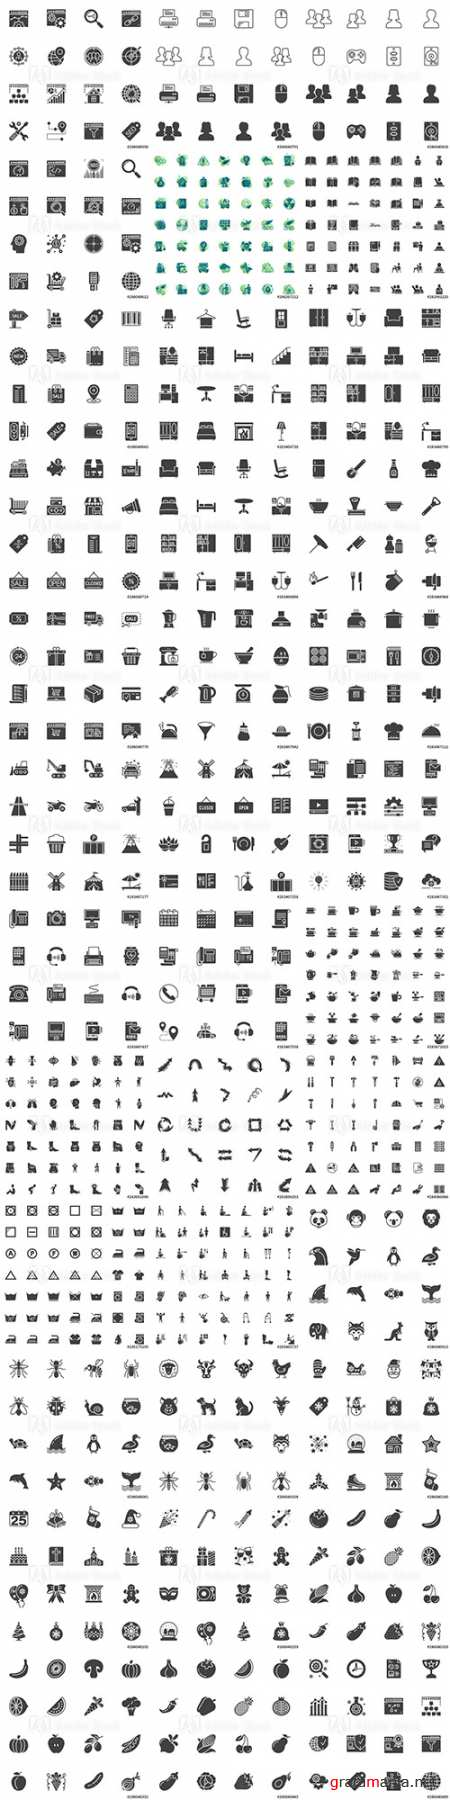 Vector Icons - Modern solid symbol collection filled style pictogram pack. Signs logo illustration